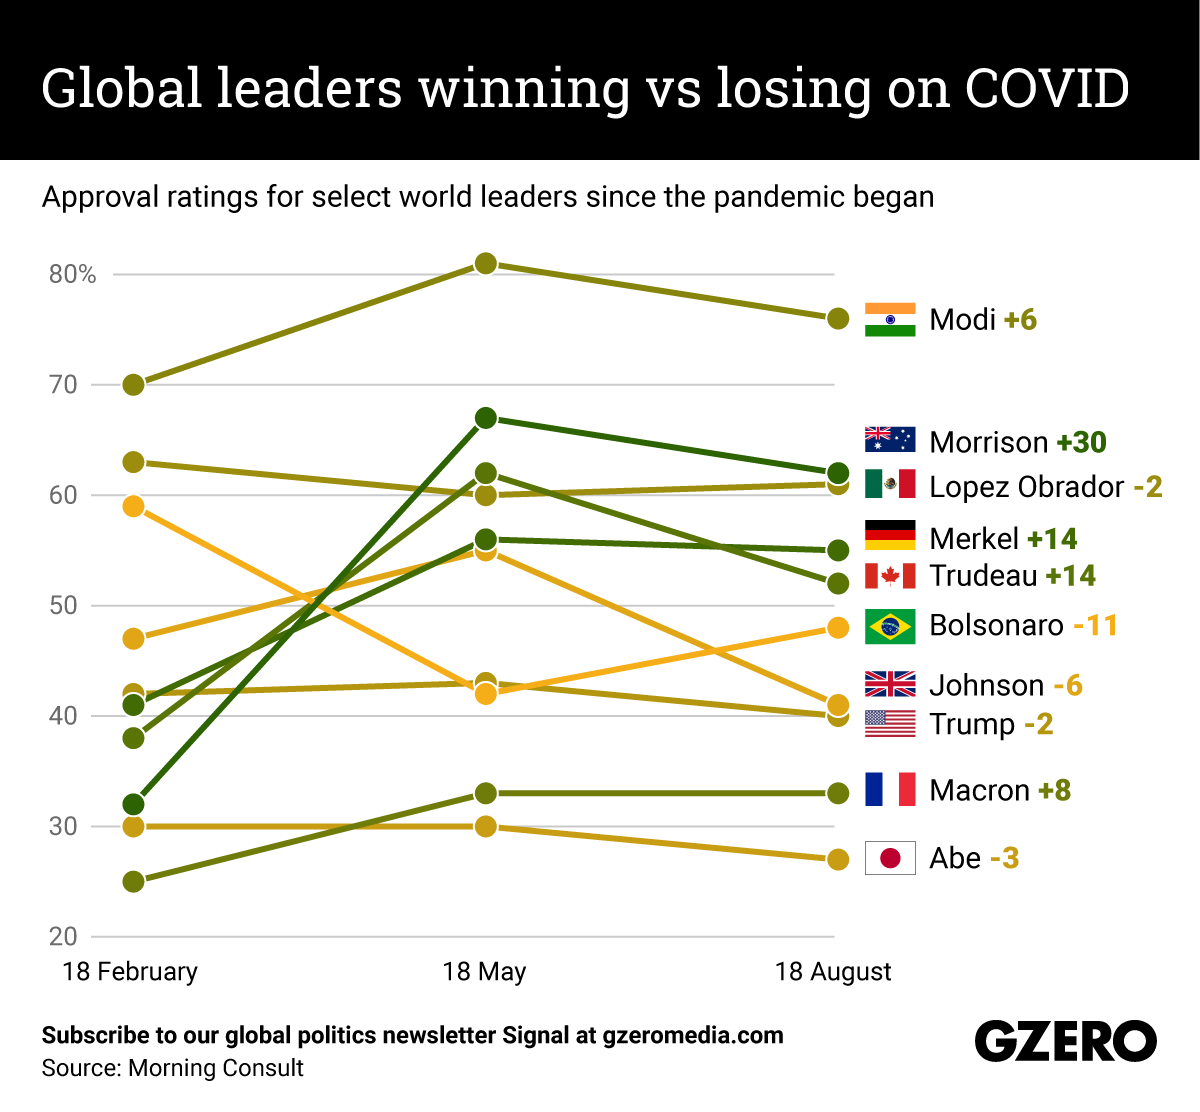 The Graphic Truth: Global leaders winning vs losing on COVID